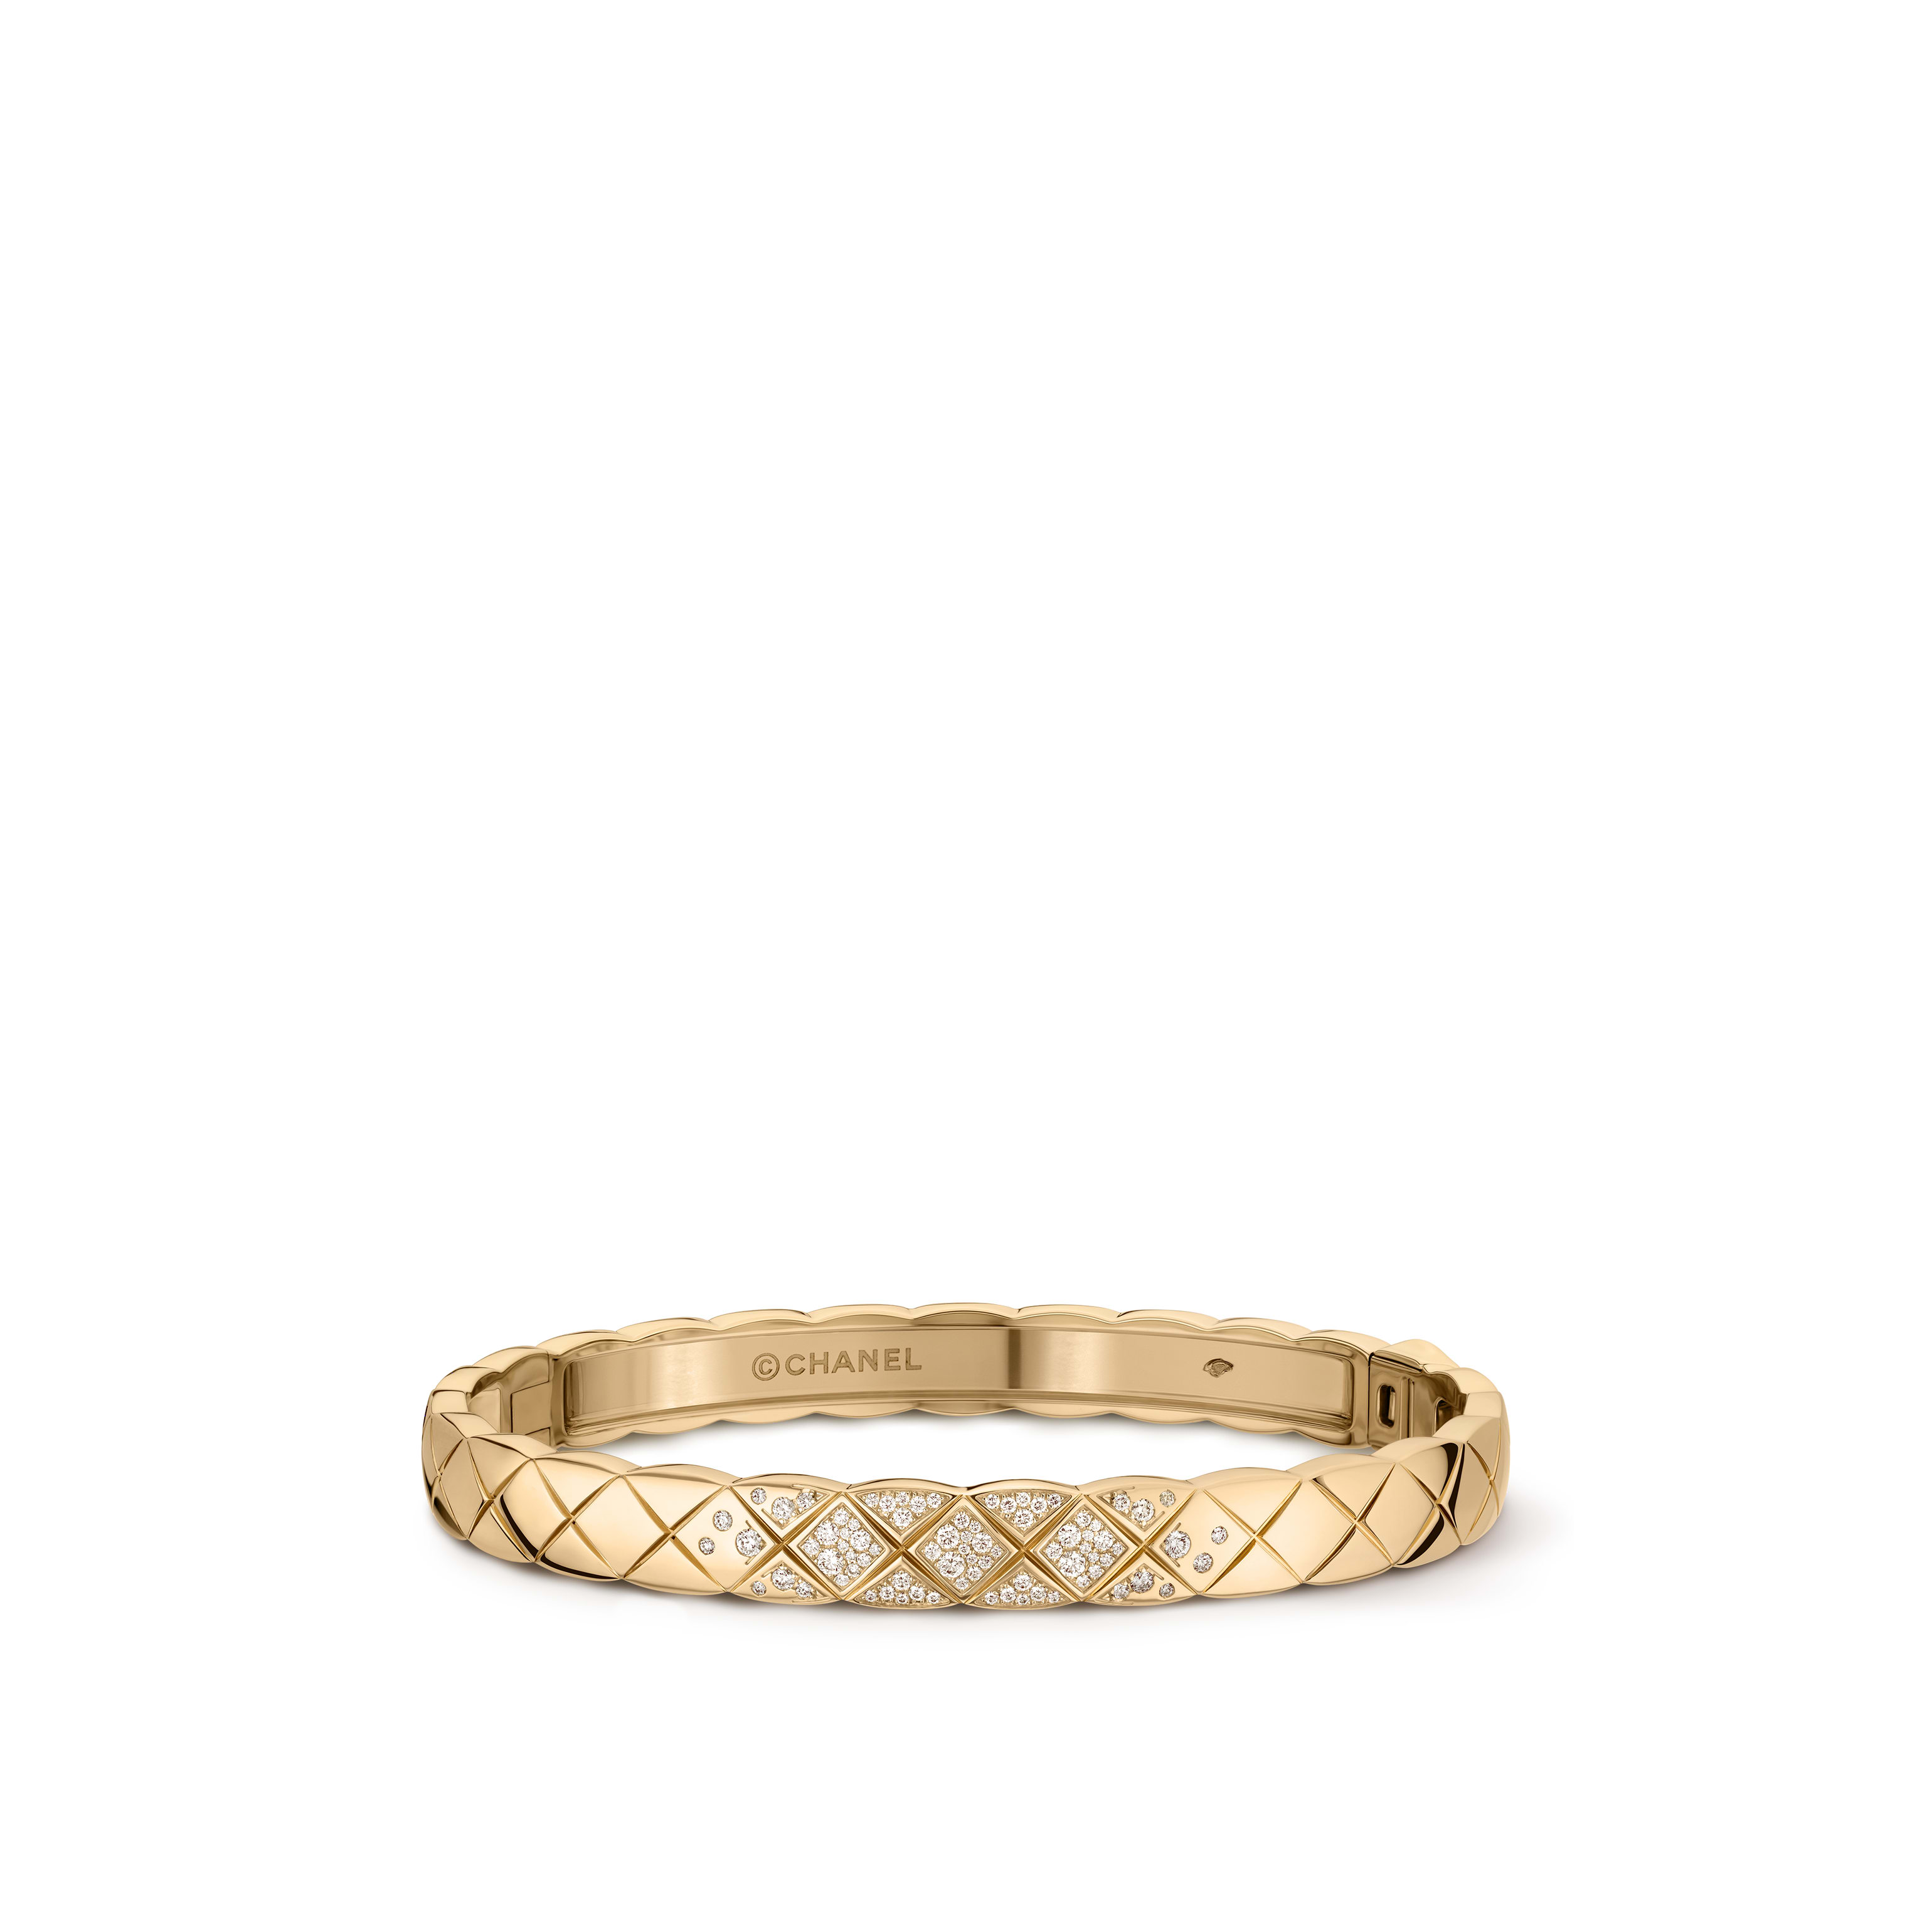 Coco Crush bracelet - Quilted motif, 18K BEIGE GOLD, diamonds - CHANEL - Default view - see standard sized version